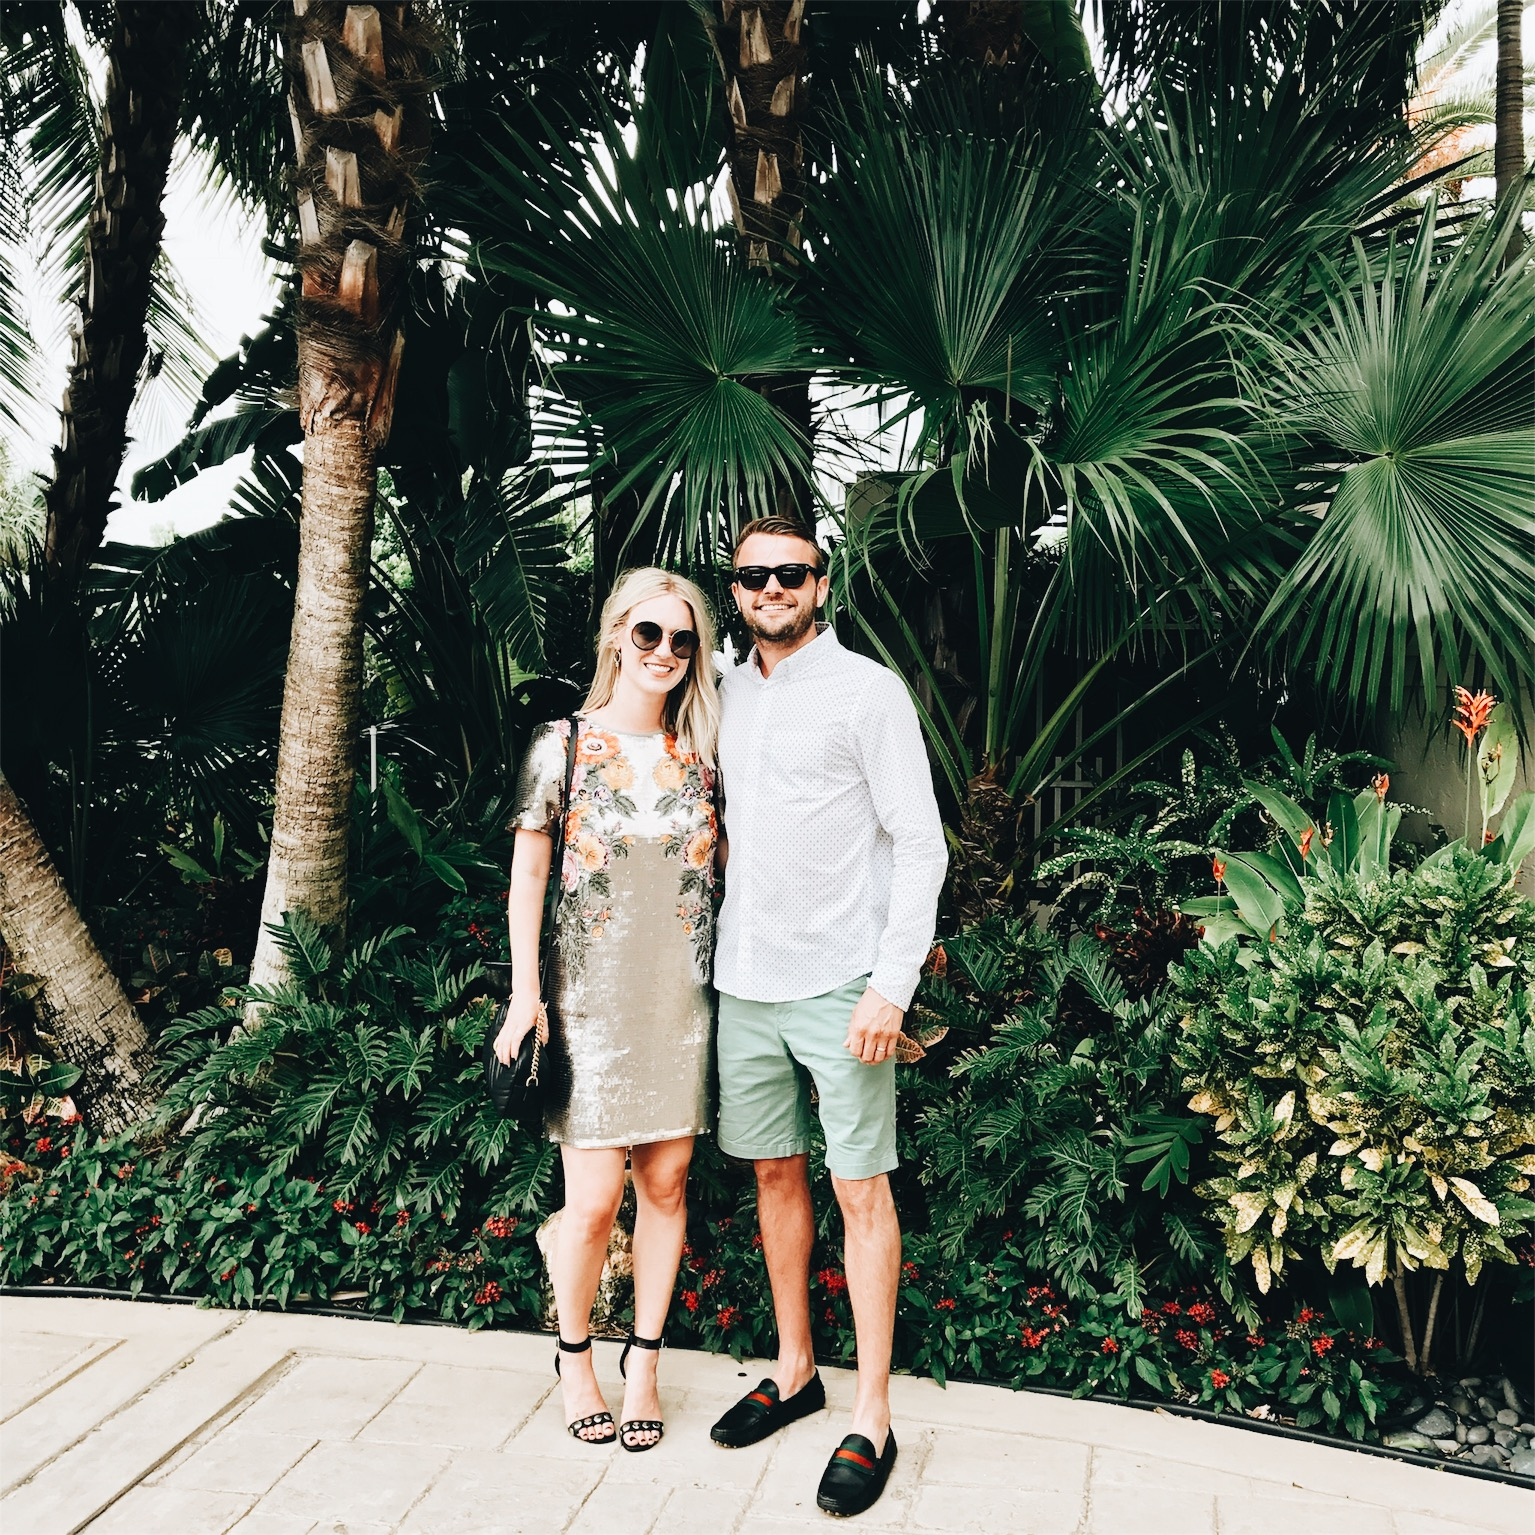 My Honeymoon Travel with Four Seasons West Palm Beach